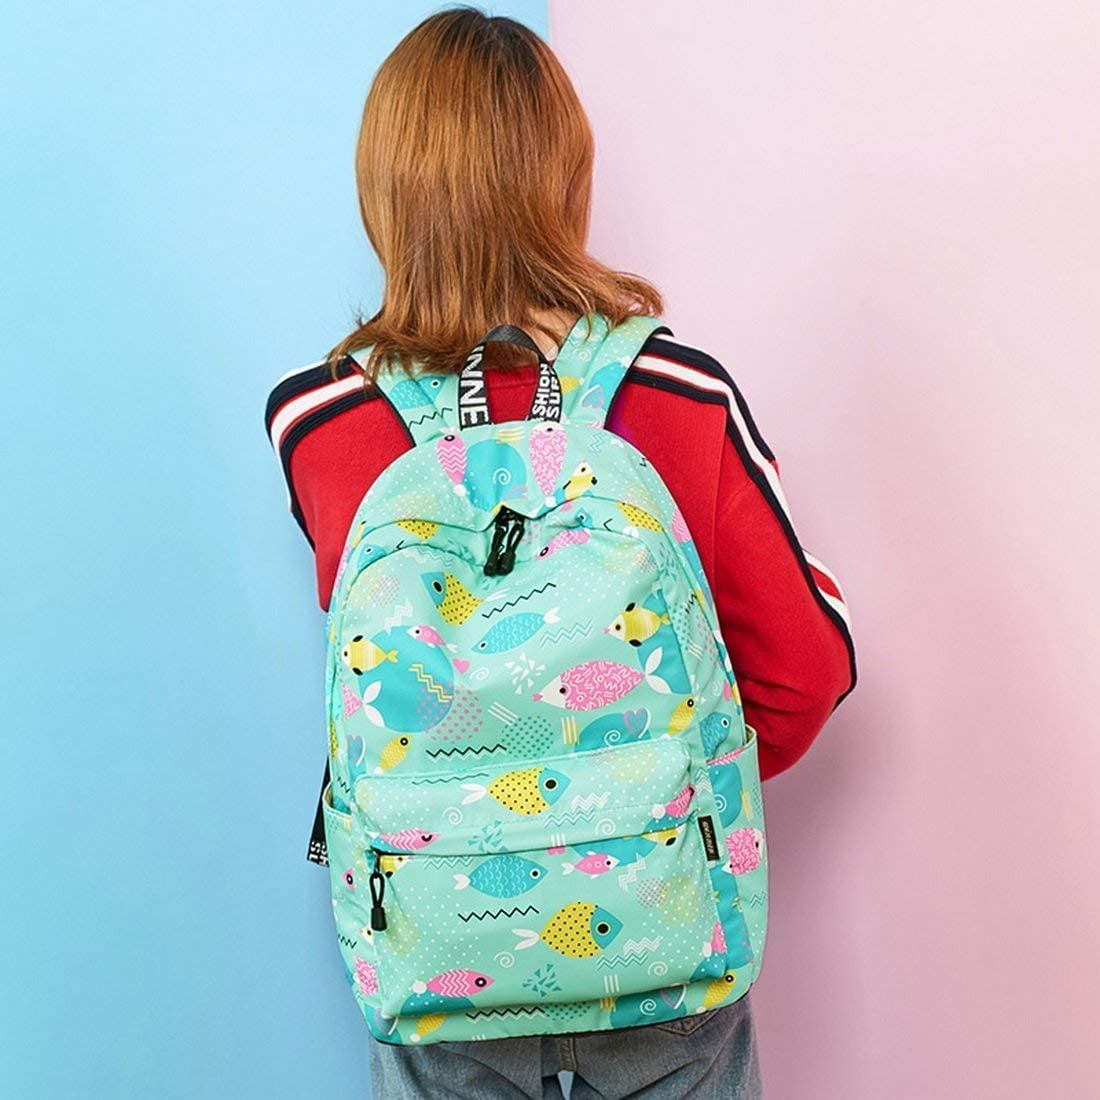 ZLHLL Fashion Backpack Waterproof School Backpack for Girls Middle School Cute Bookbag Daypack for Women